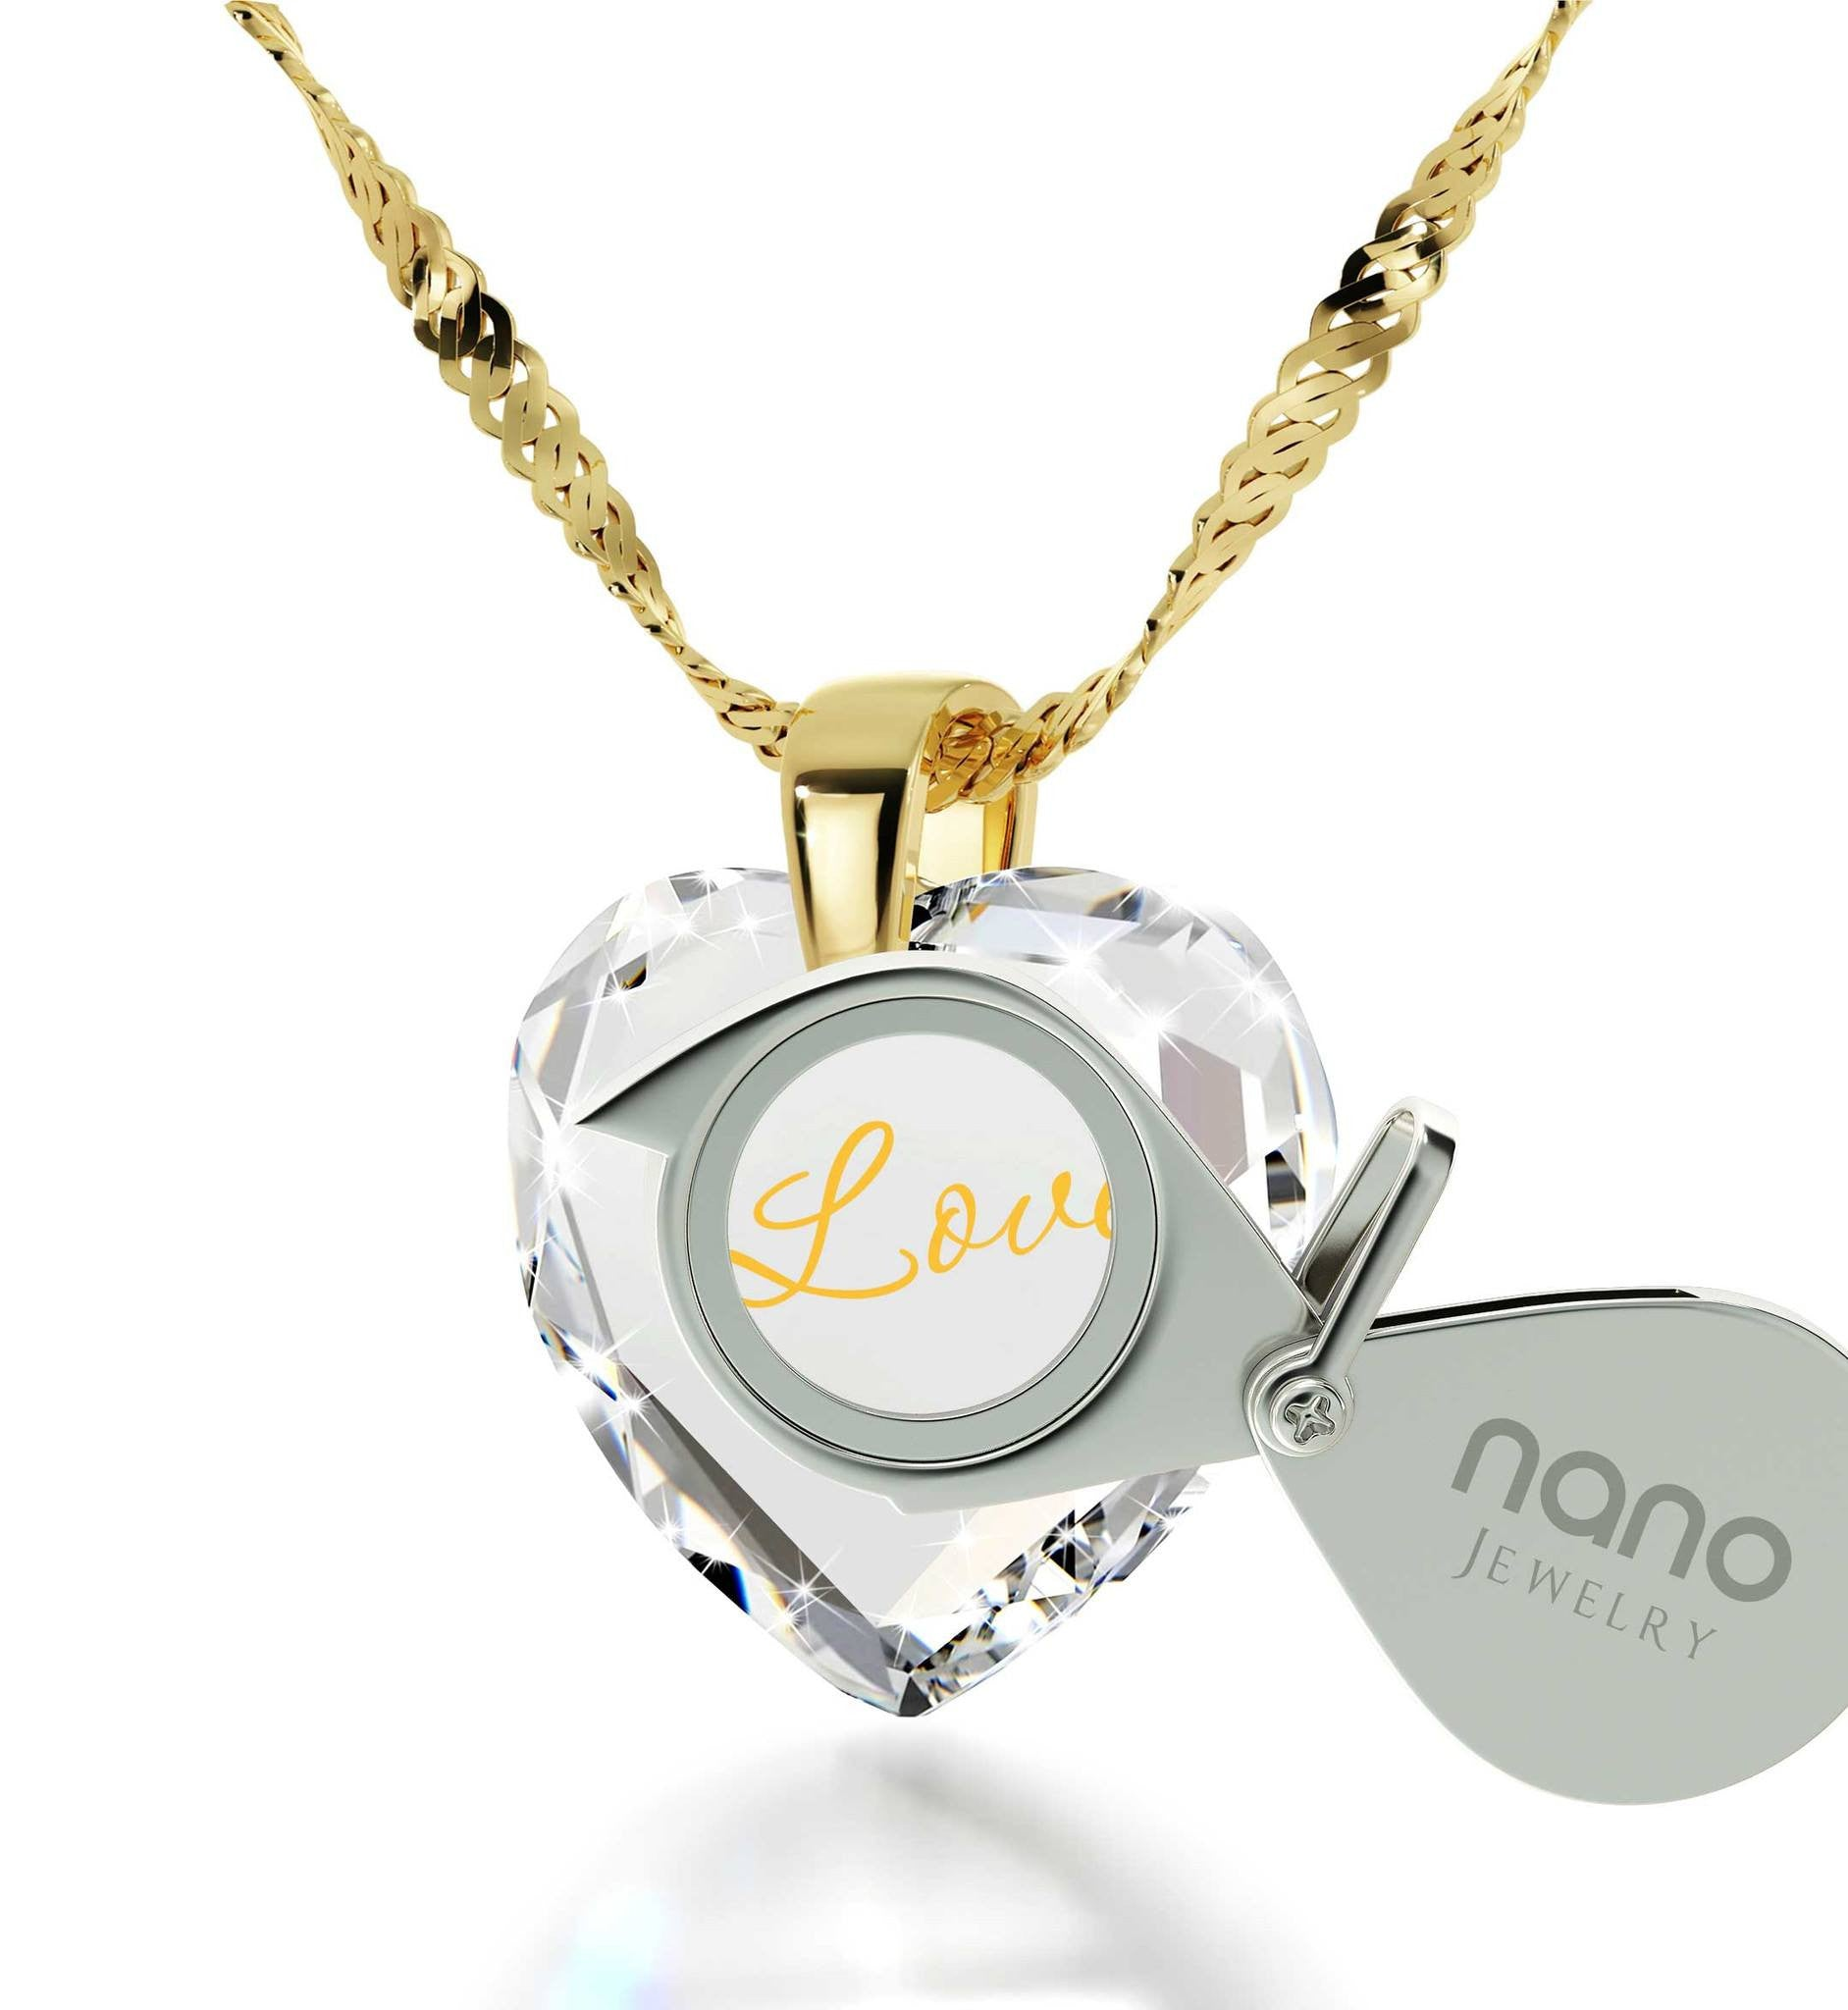 What to Buy My Wife for Christmas, Unique I Love You Gold Necklaces, 21 Birthday Gifts, by Nano Jewelry